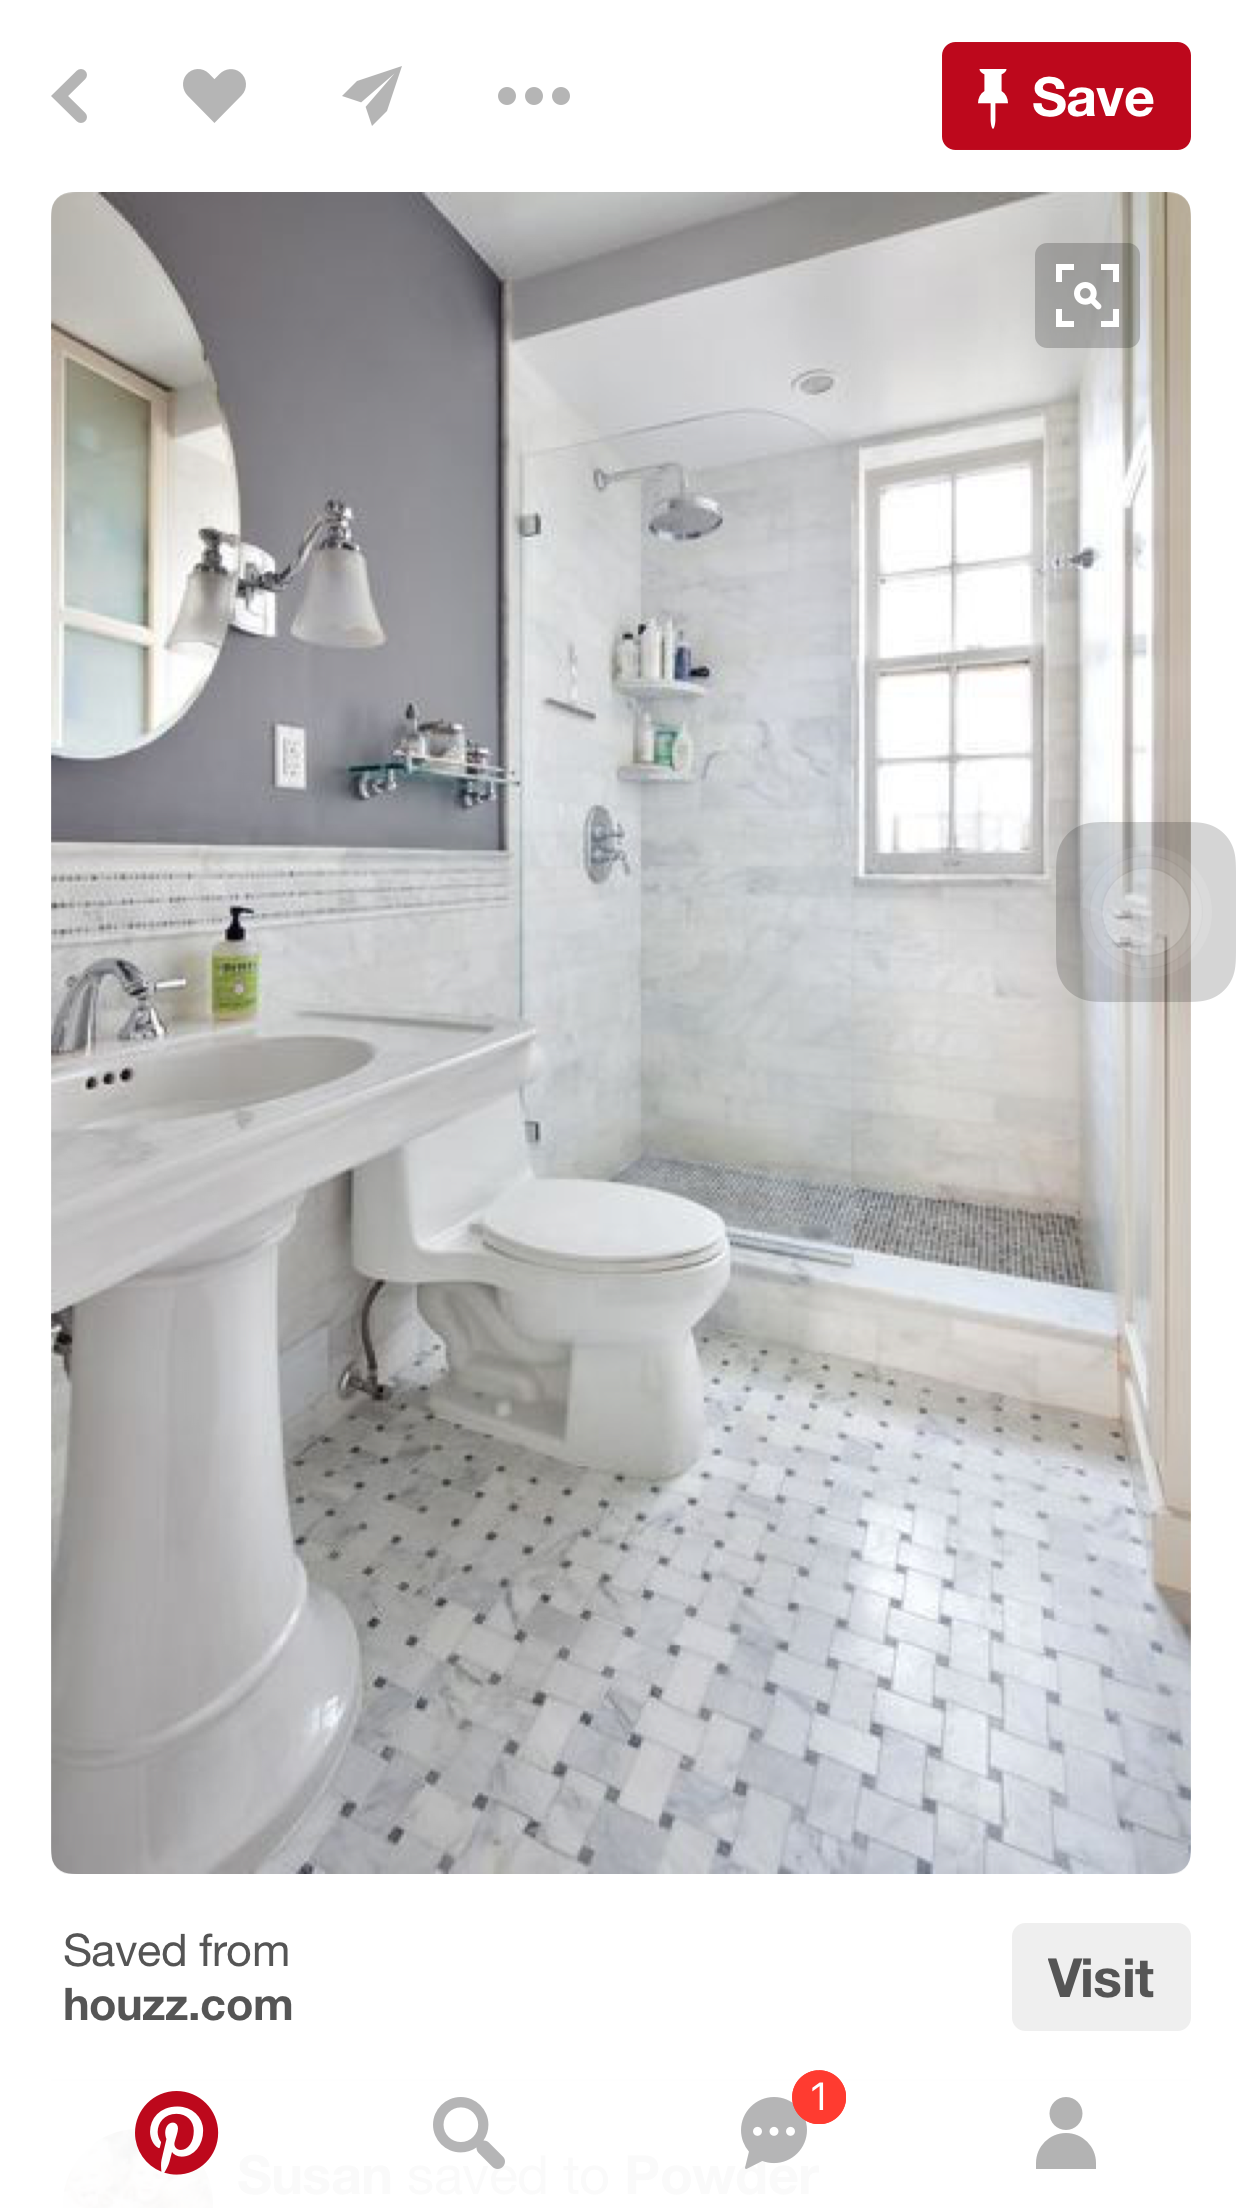 Pin by Brittany eyre on house   Pinterest   Bath, House and Bathroom ...